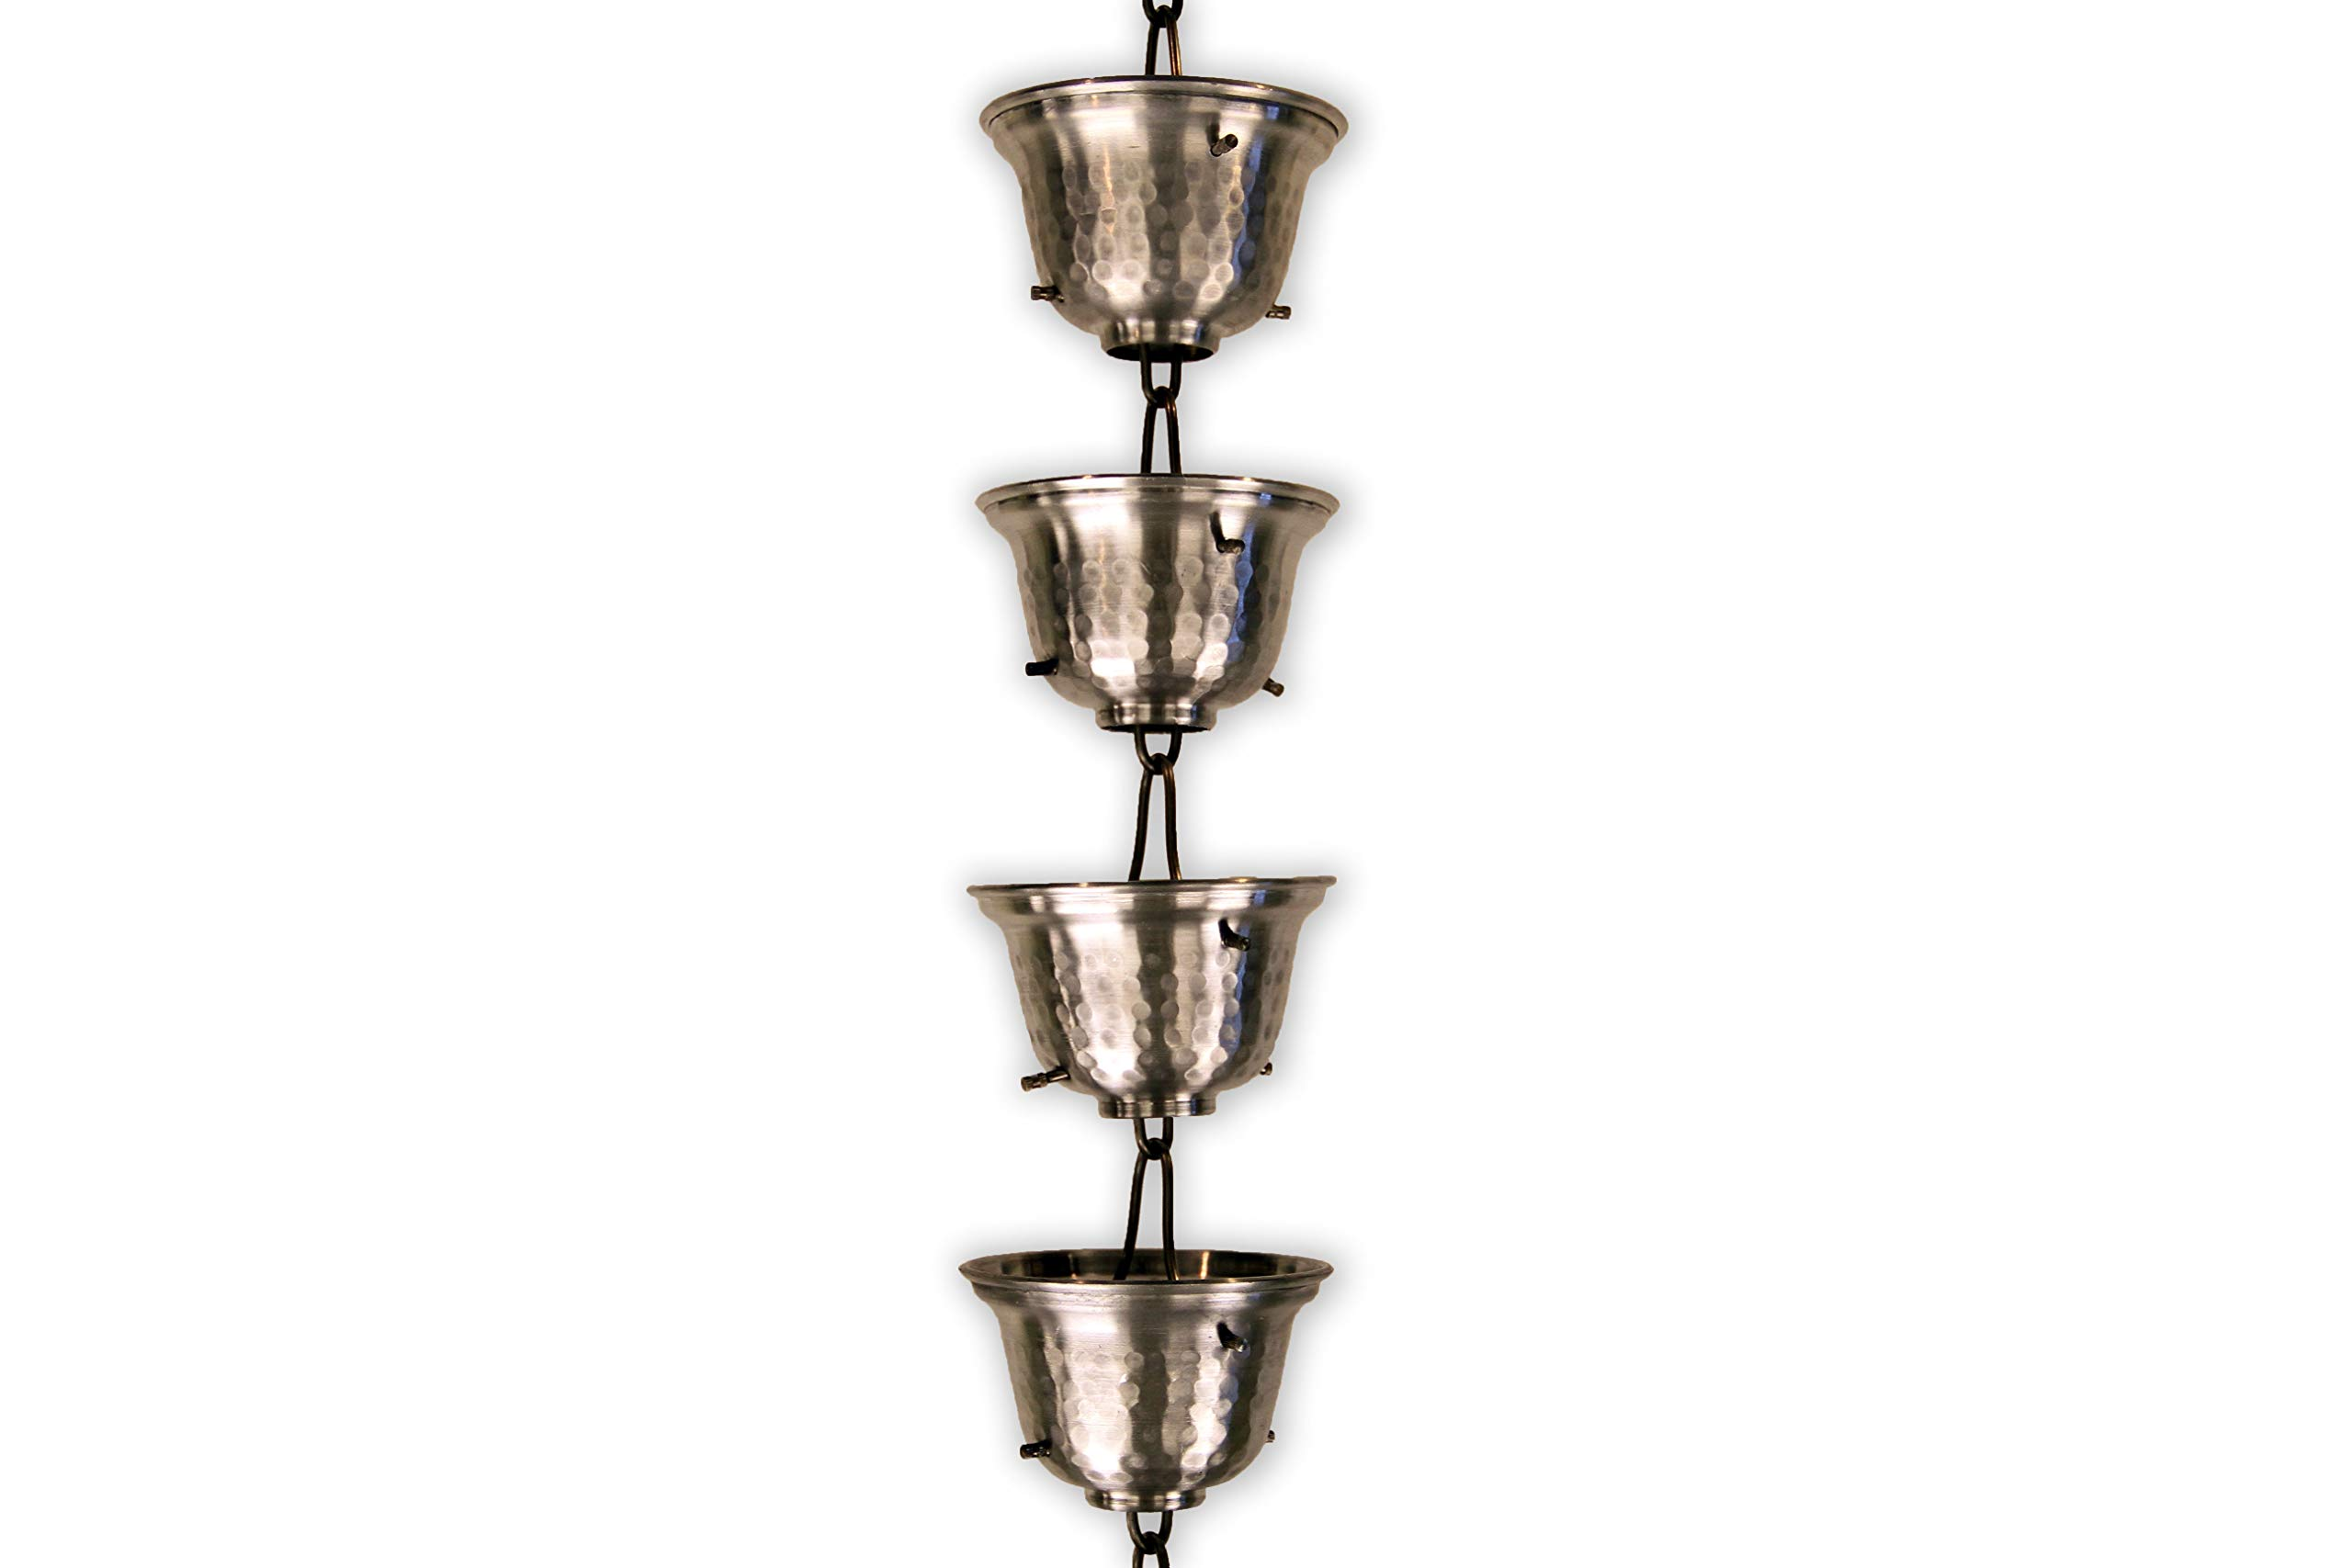 Aluminum Bells RAIN Chain with Installation KIT (10 Foot)